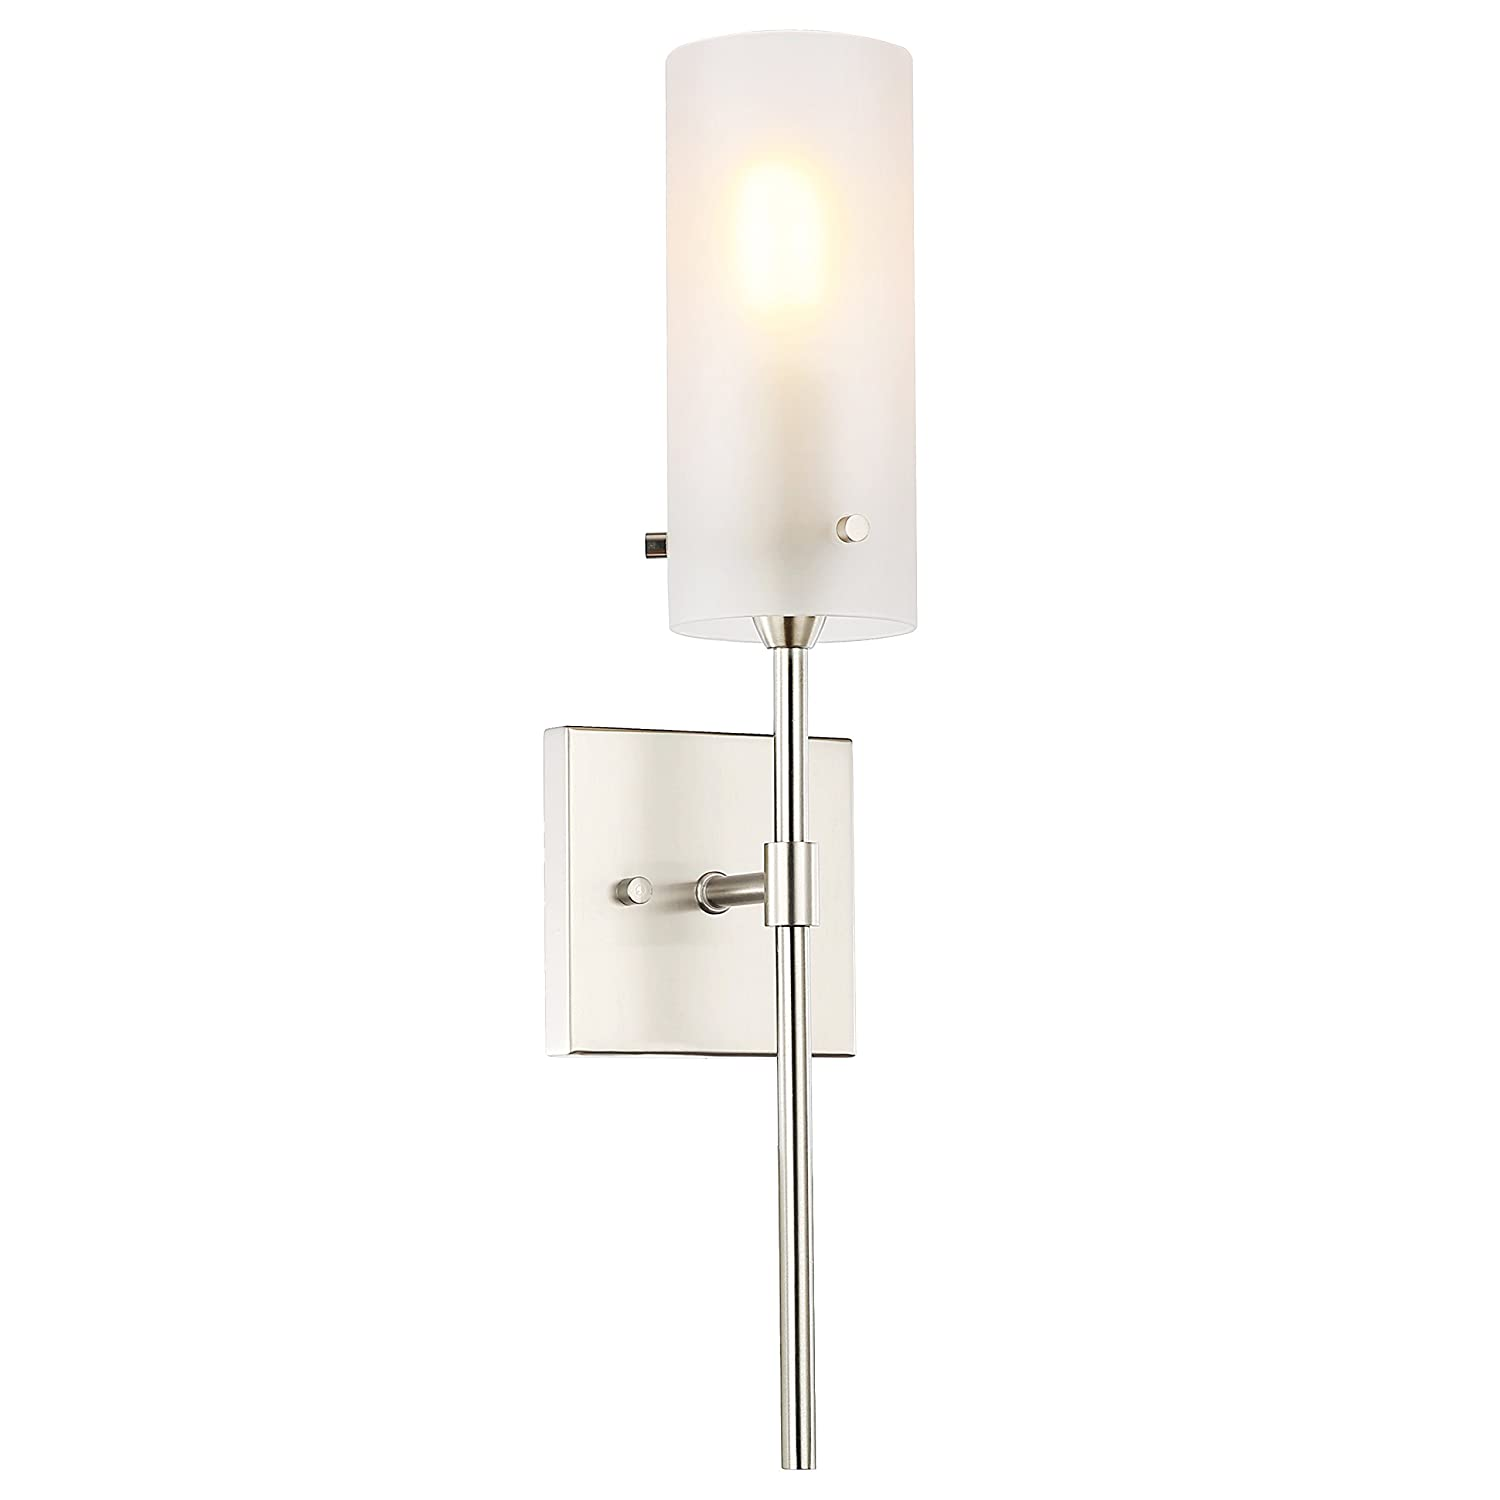 Light society montreal cylindrical wall sconce satin nickel with frosted glass shade contemporary minimalist modern lighting fixture ls w238 sn fr